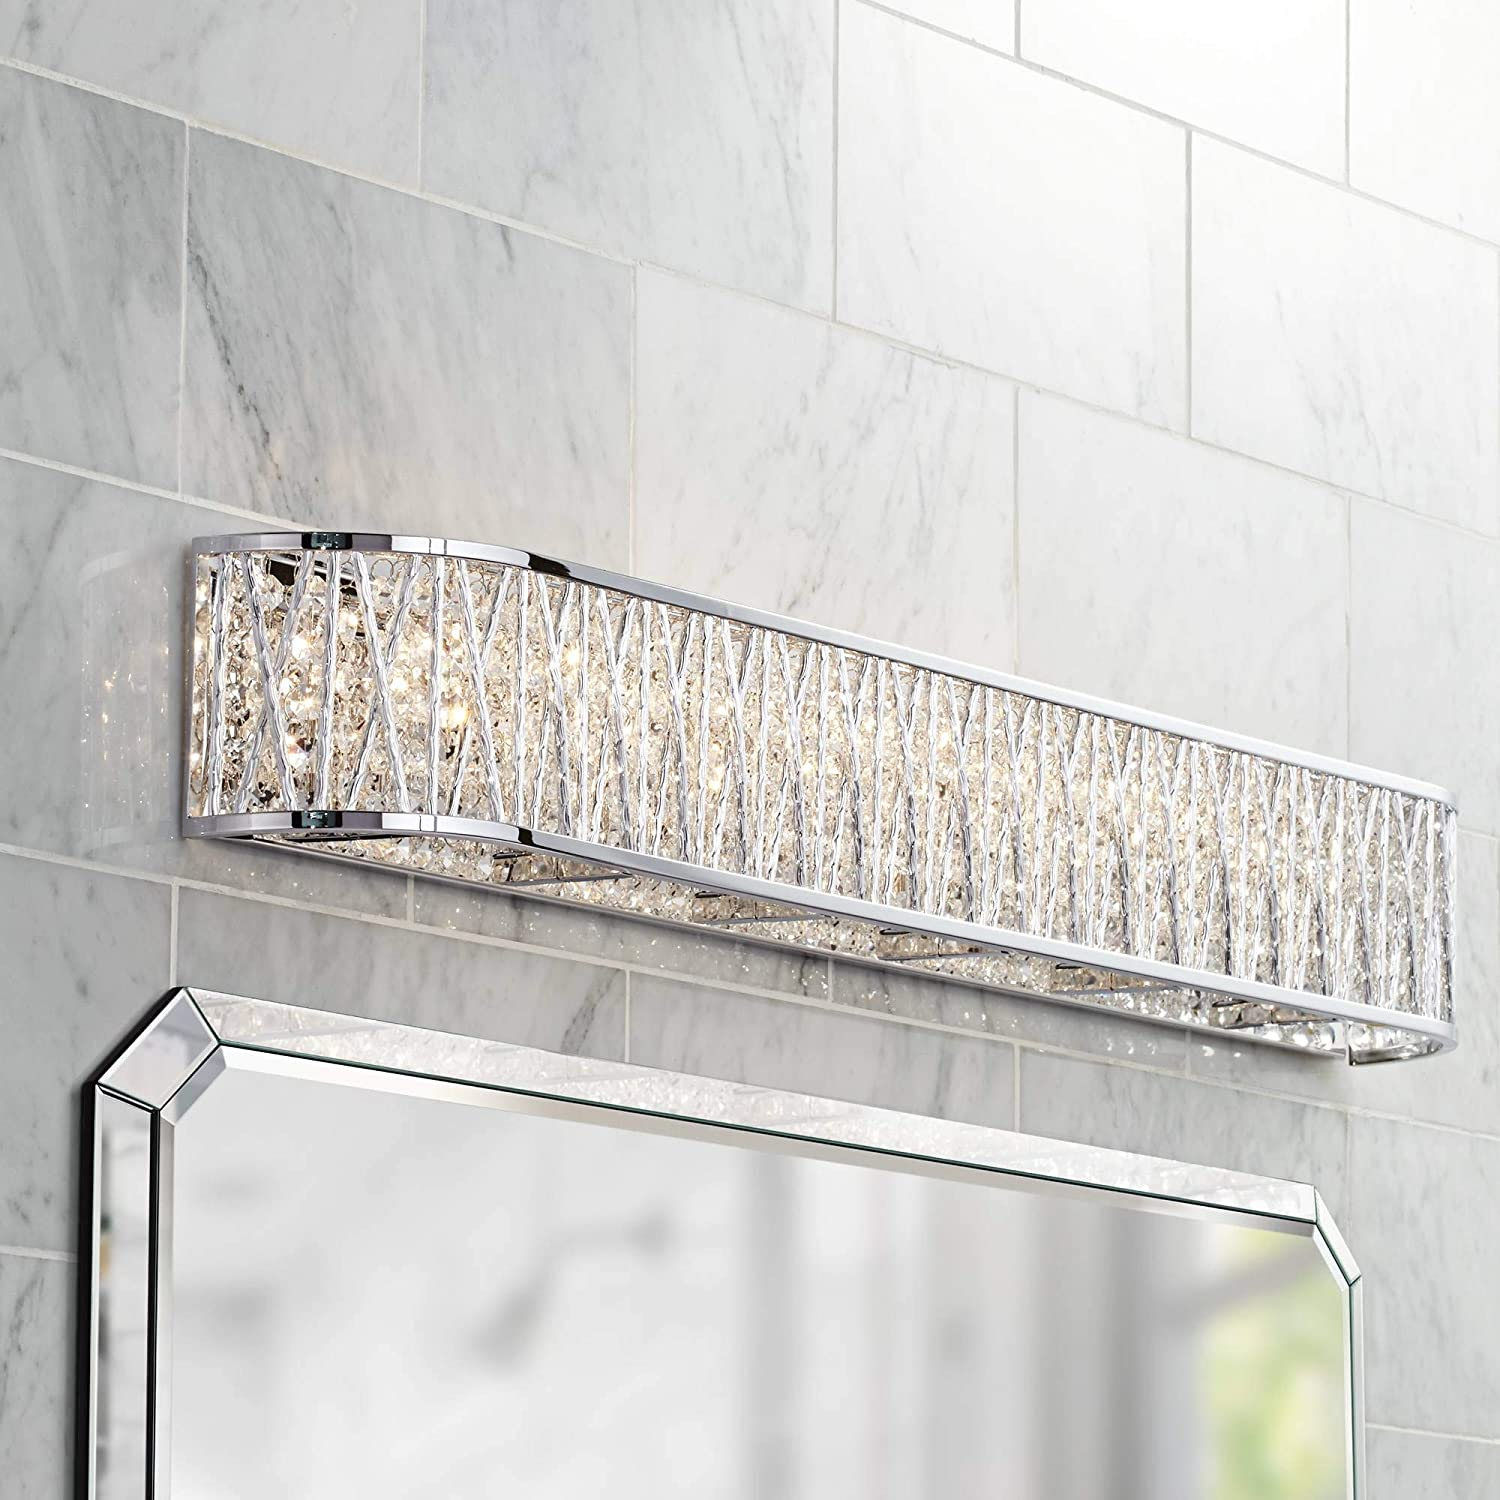 Woven Laser Cut Modern Wall Light Chrome Hardwired 36 Wide Light Bar Fixture Crystal Accents for Bathroom Vanity – Possini Euro Design